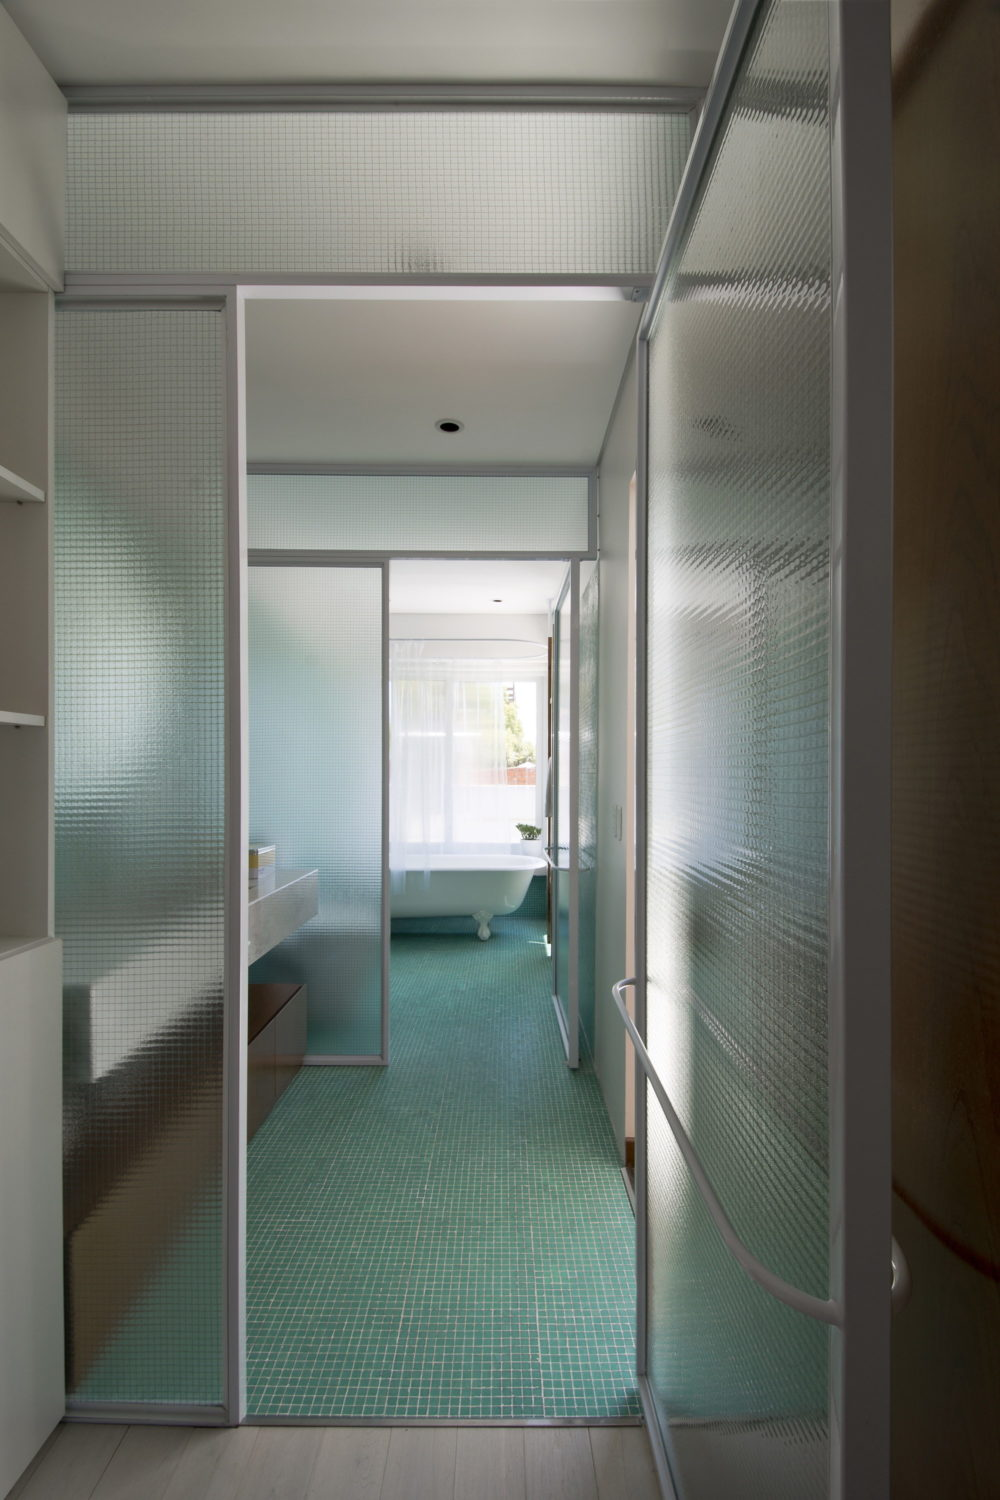 Luis Viale | House Renovation by Nidolab Arquitectura